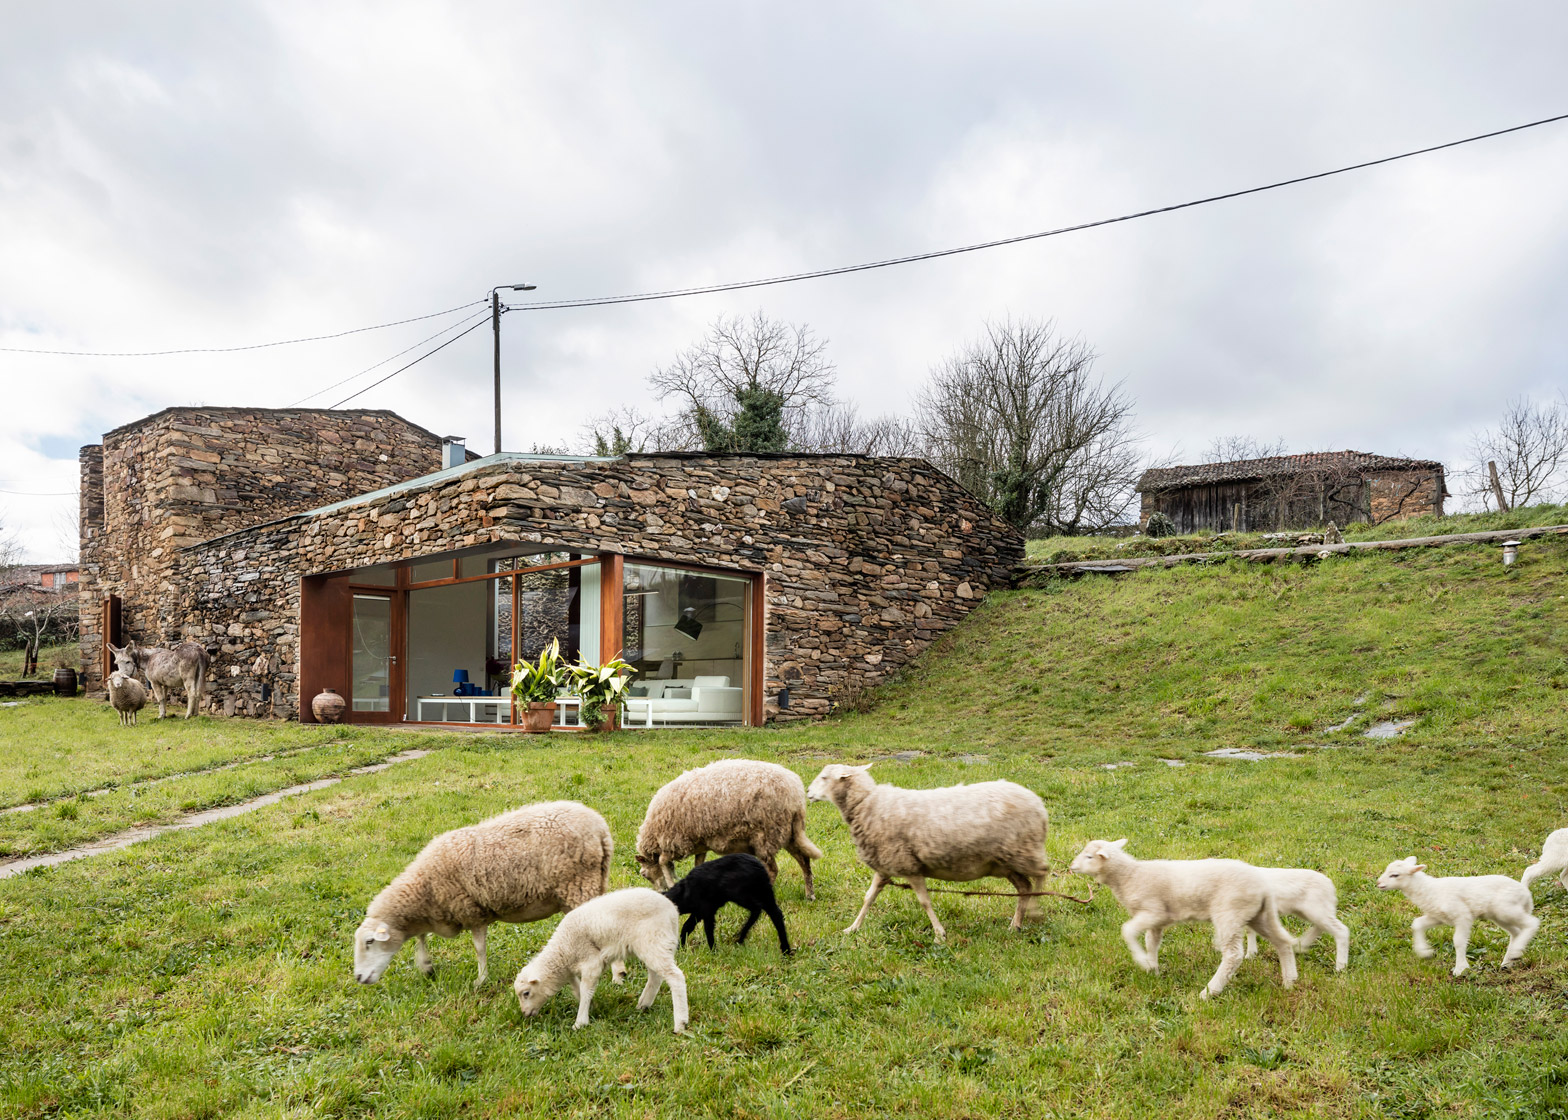 A Bodega by Cubus Arquitectura